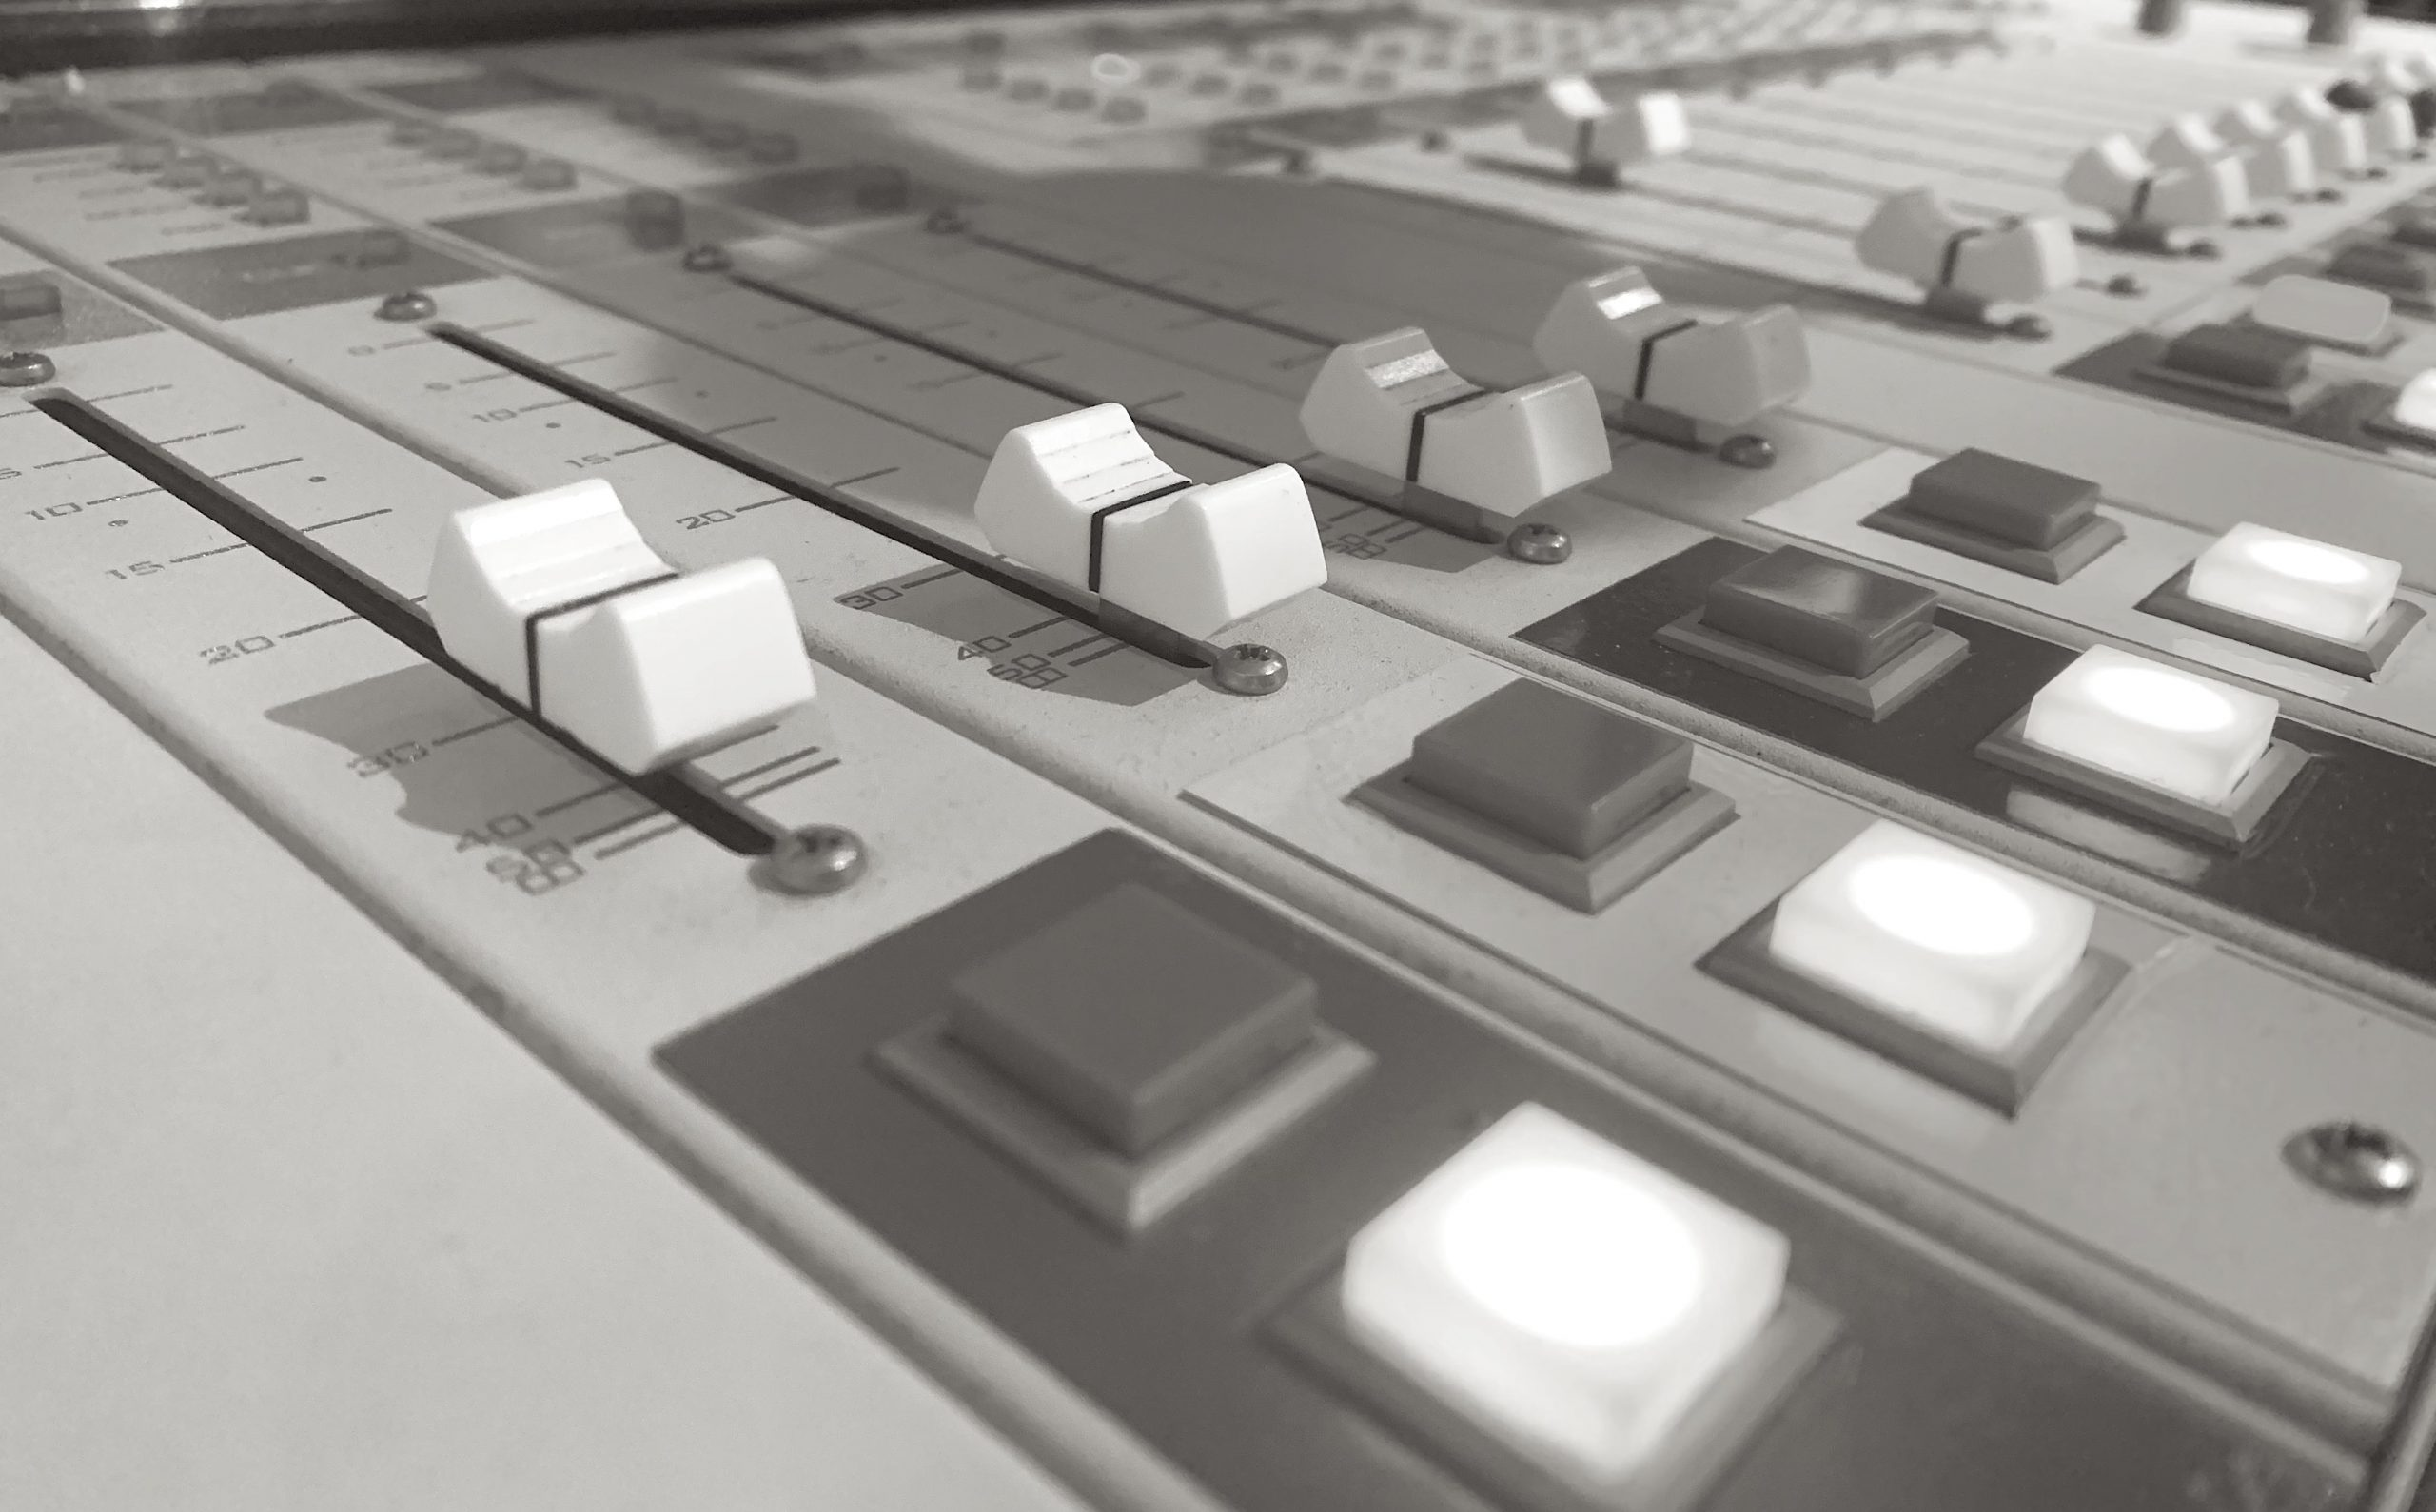 This image shows a close up of the fader and control buttons of the broadcast board at Vancouver Co-op Radio CFRO 100.5 FM